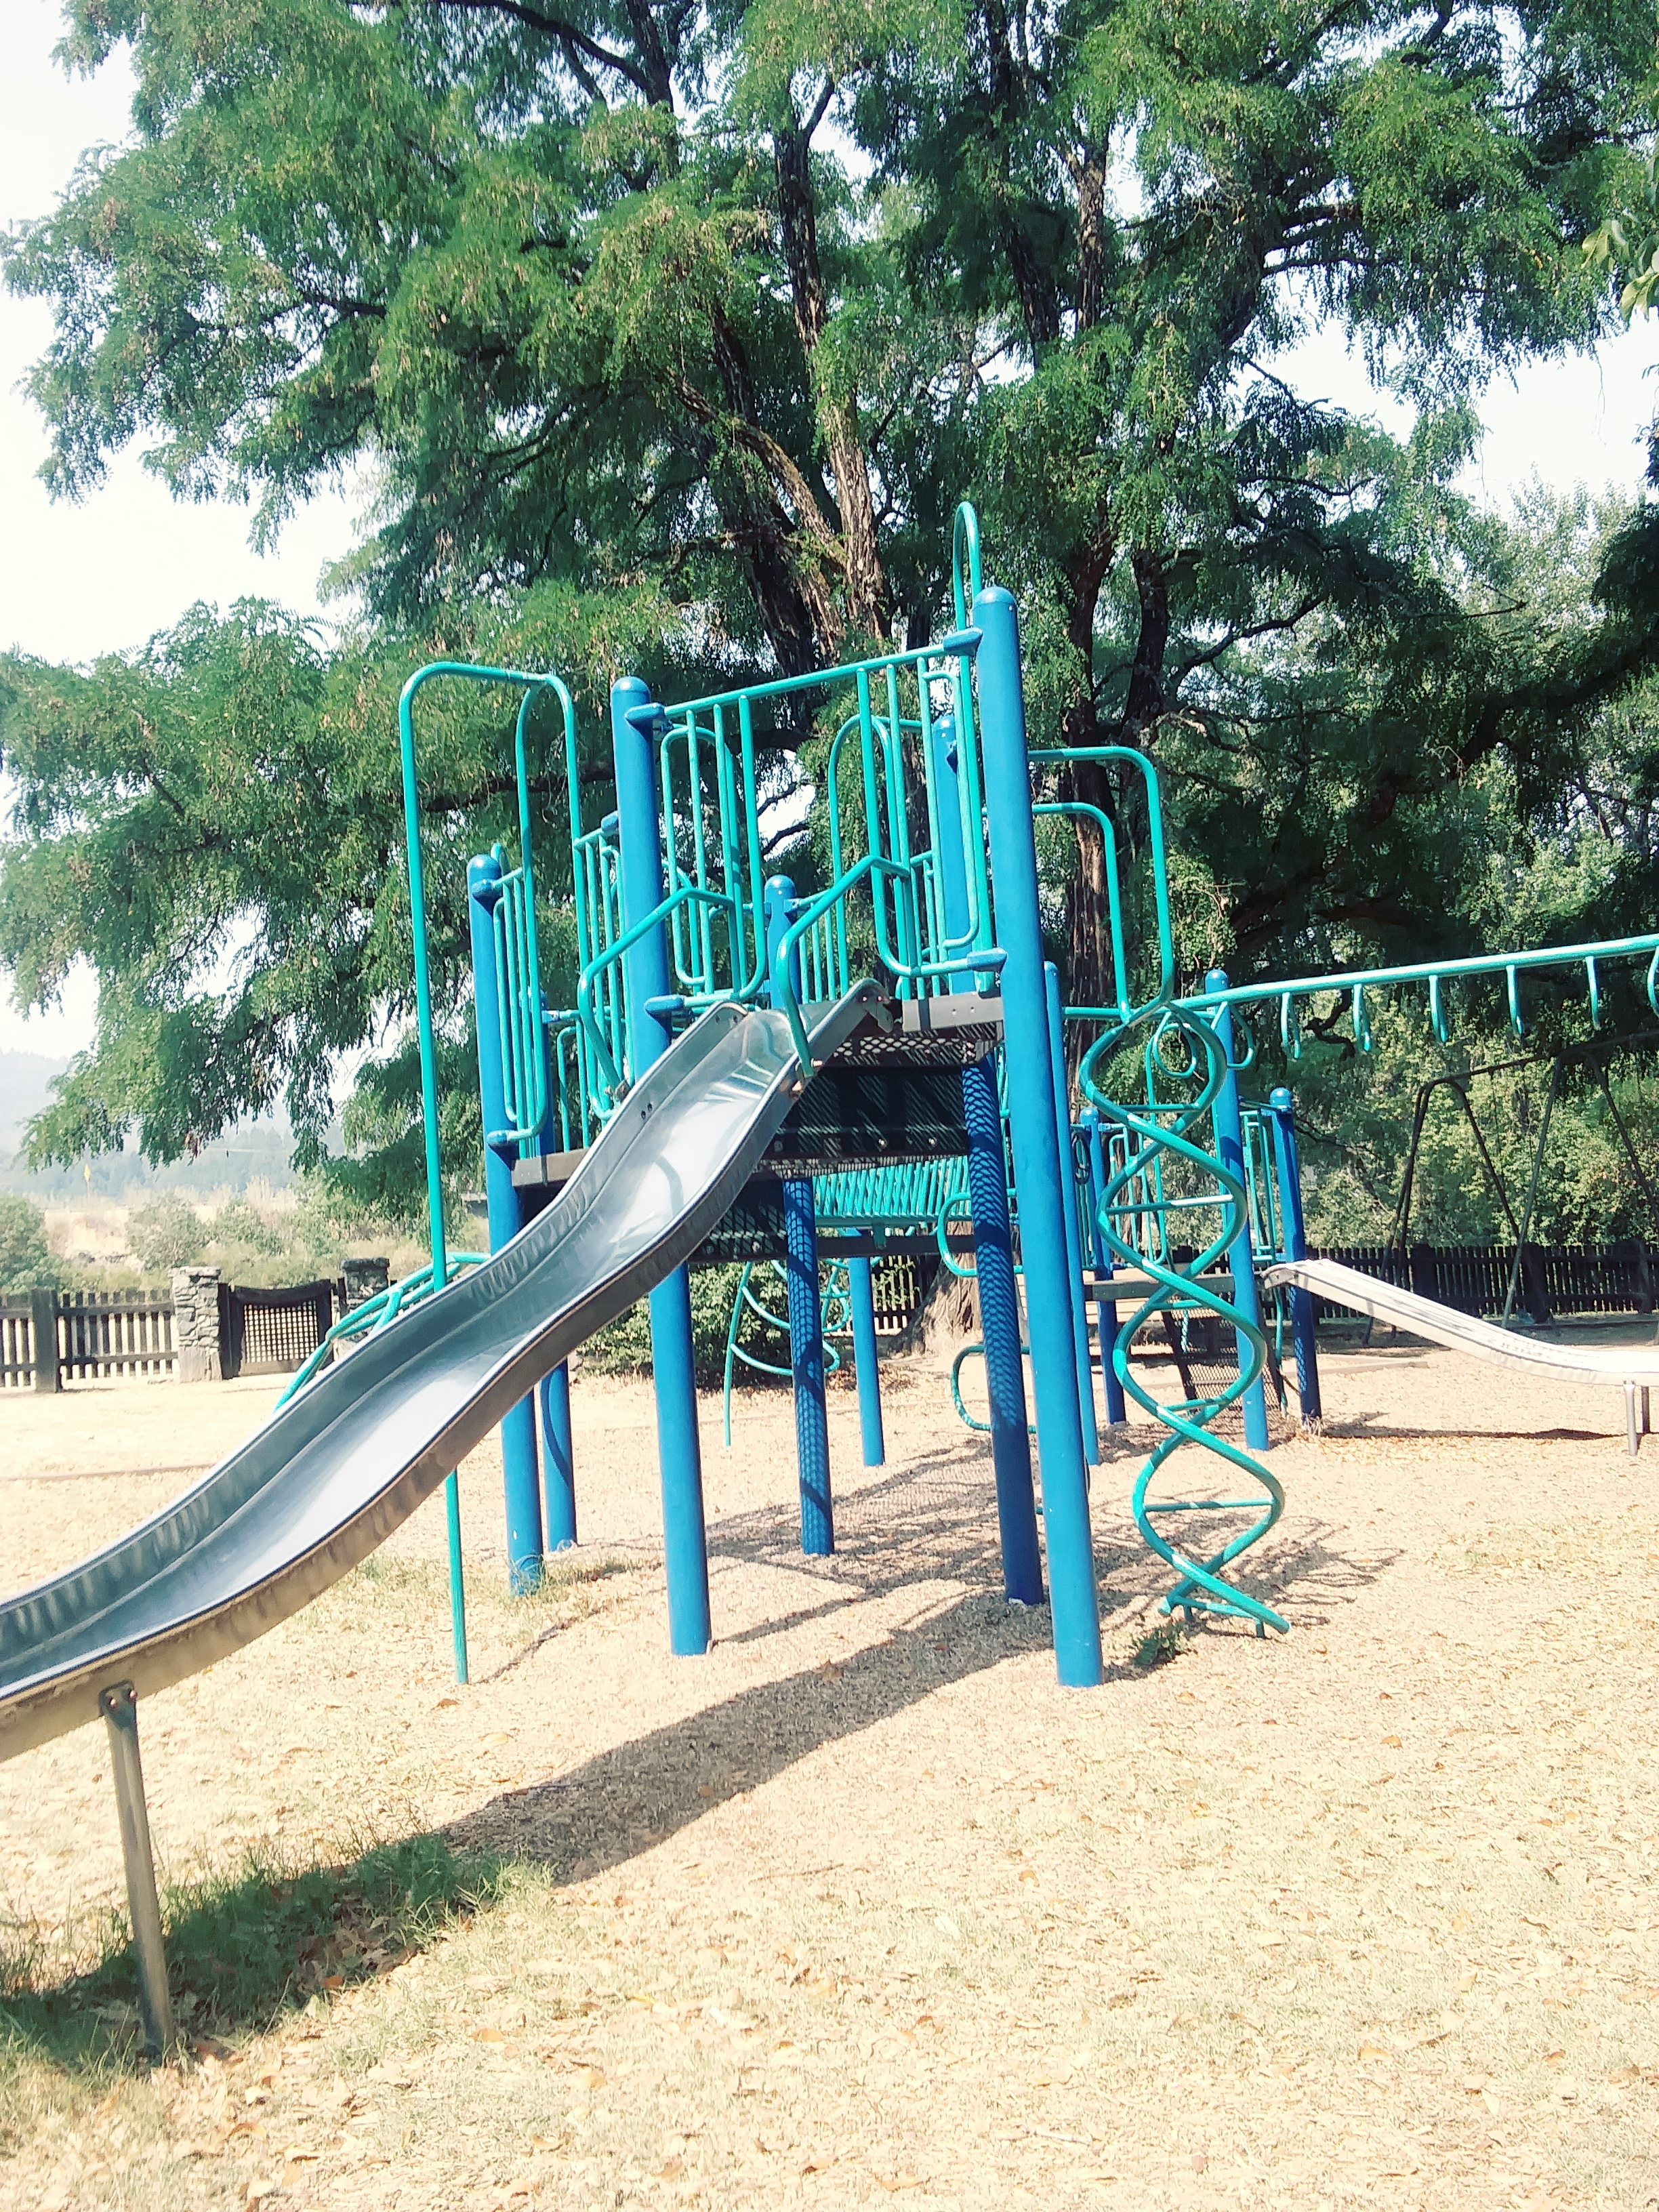 The playground equipment at Little Tooby Park -